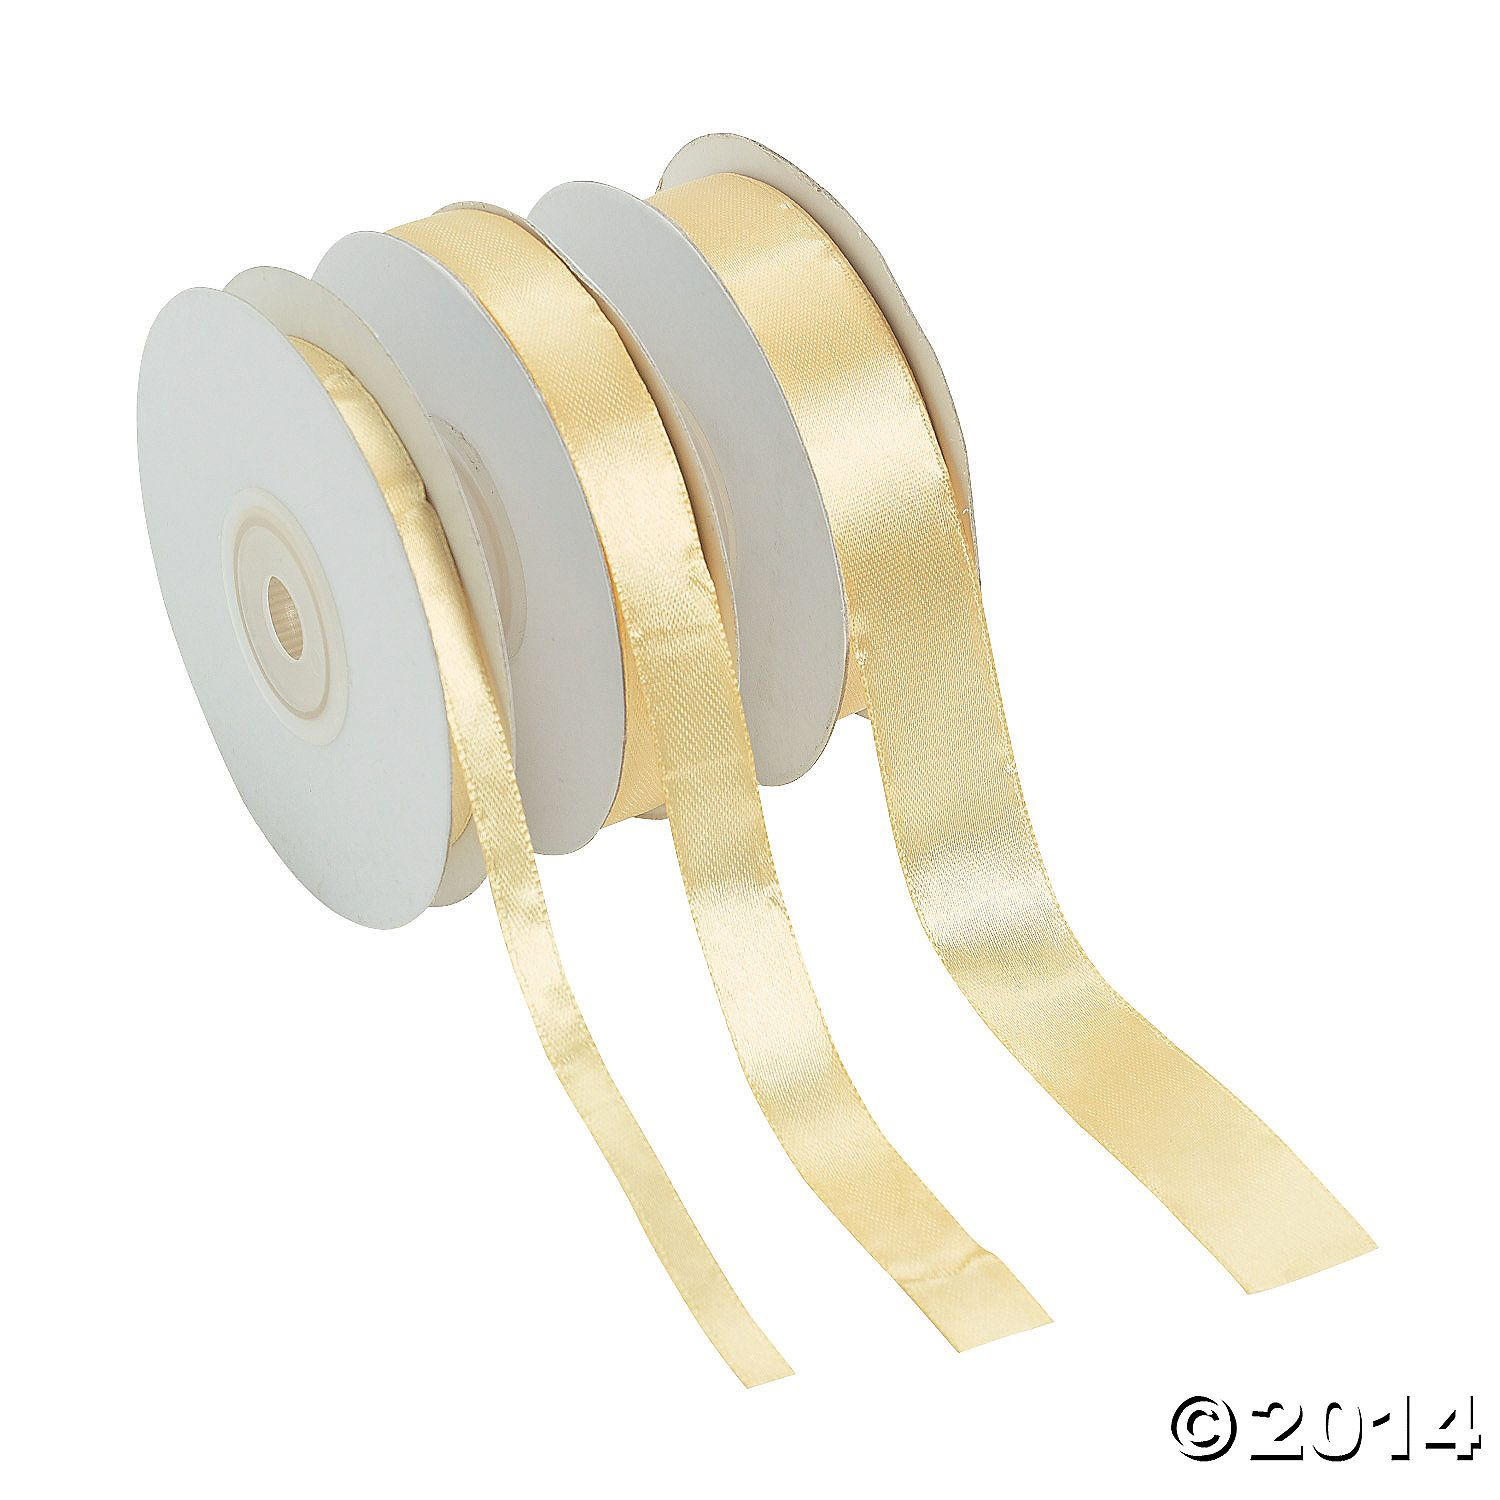 Pale+Gold+Satin+Ribbon+Set+-+OrientalTrading.com